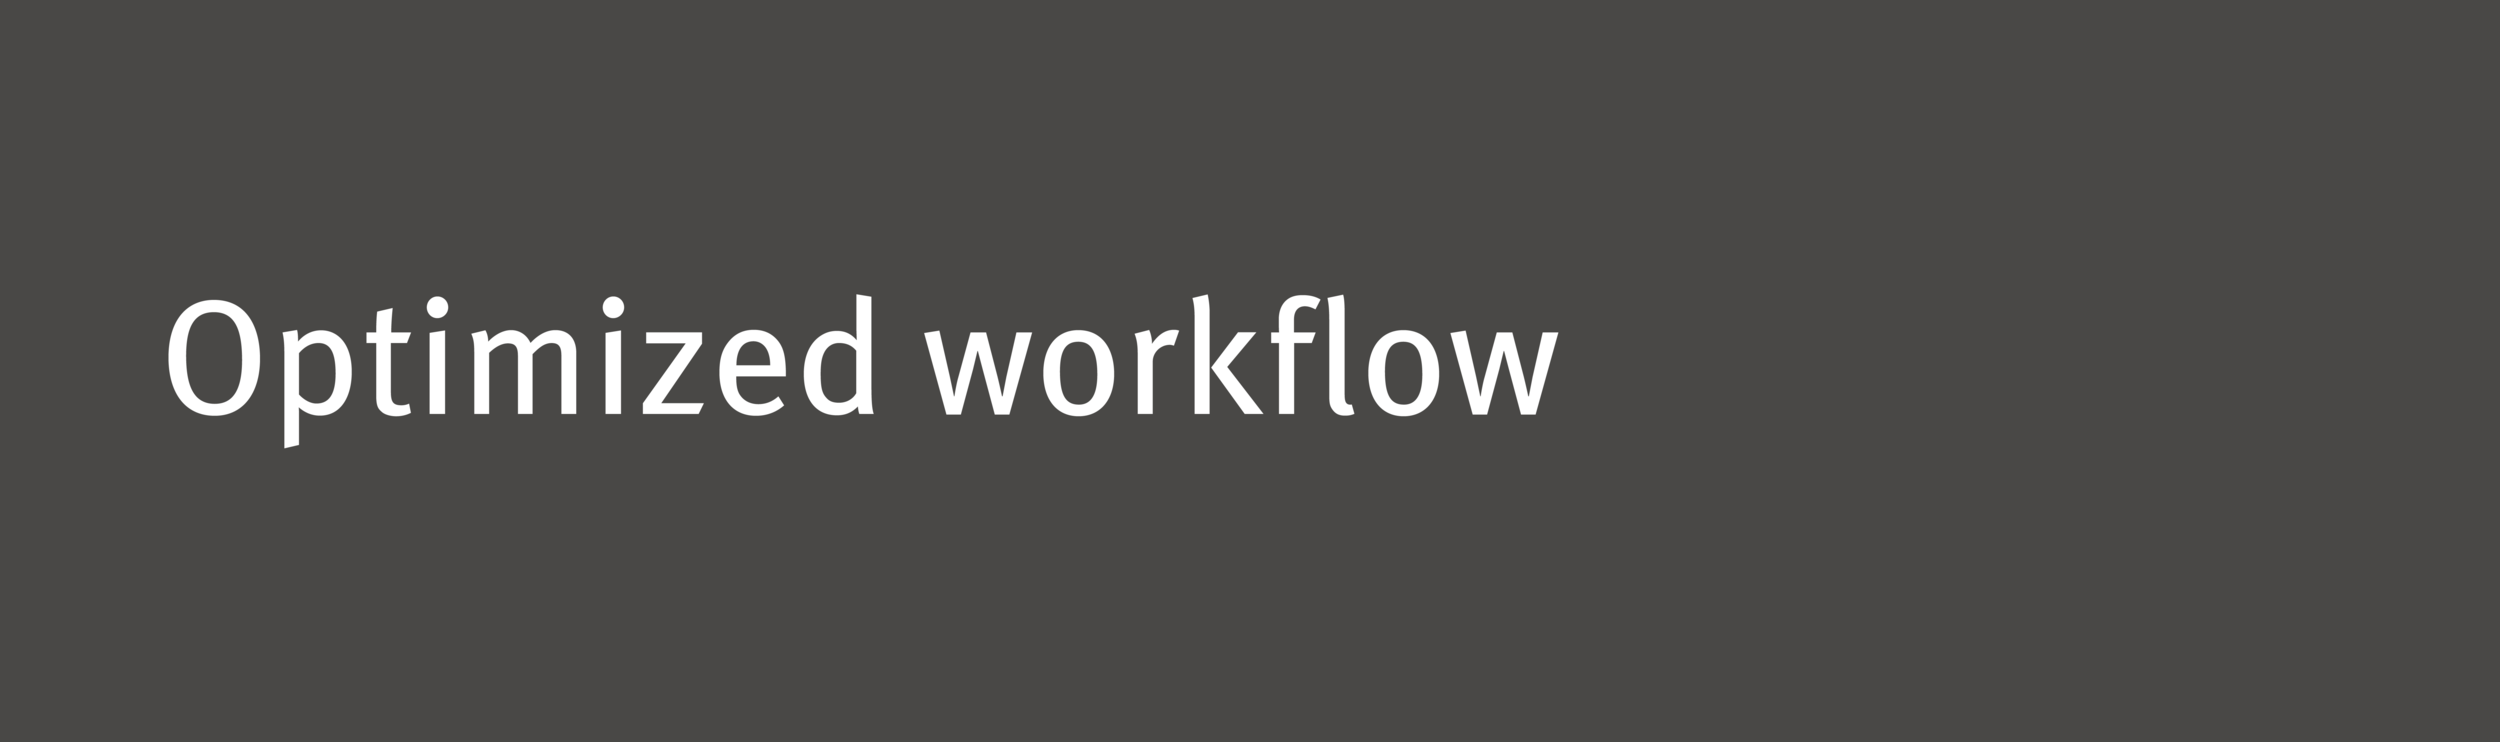 5 Optimized Workflow-01.png